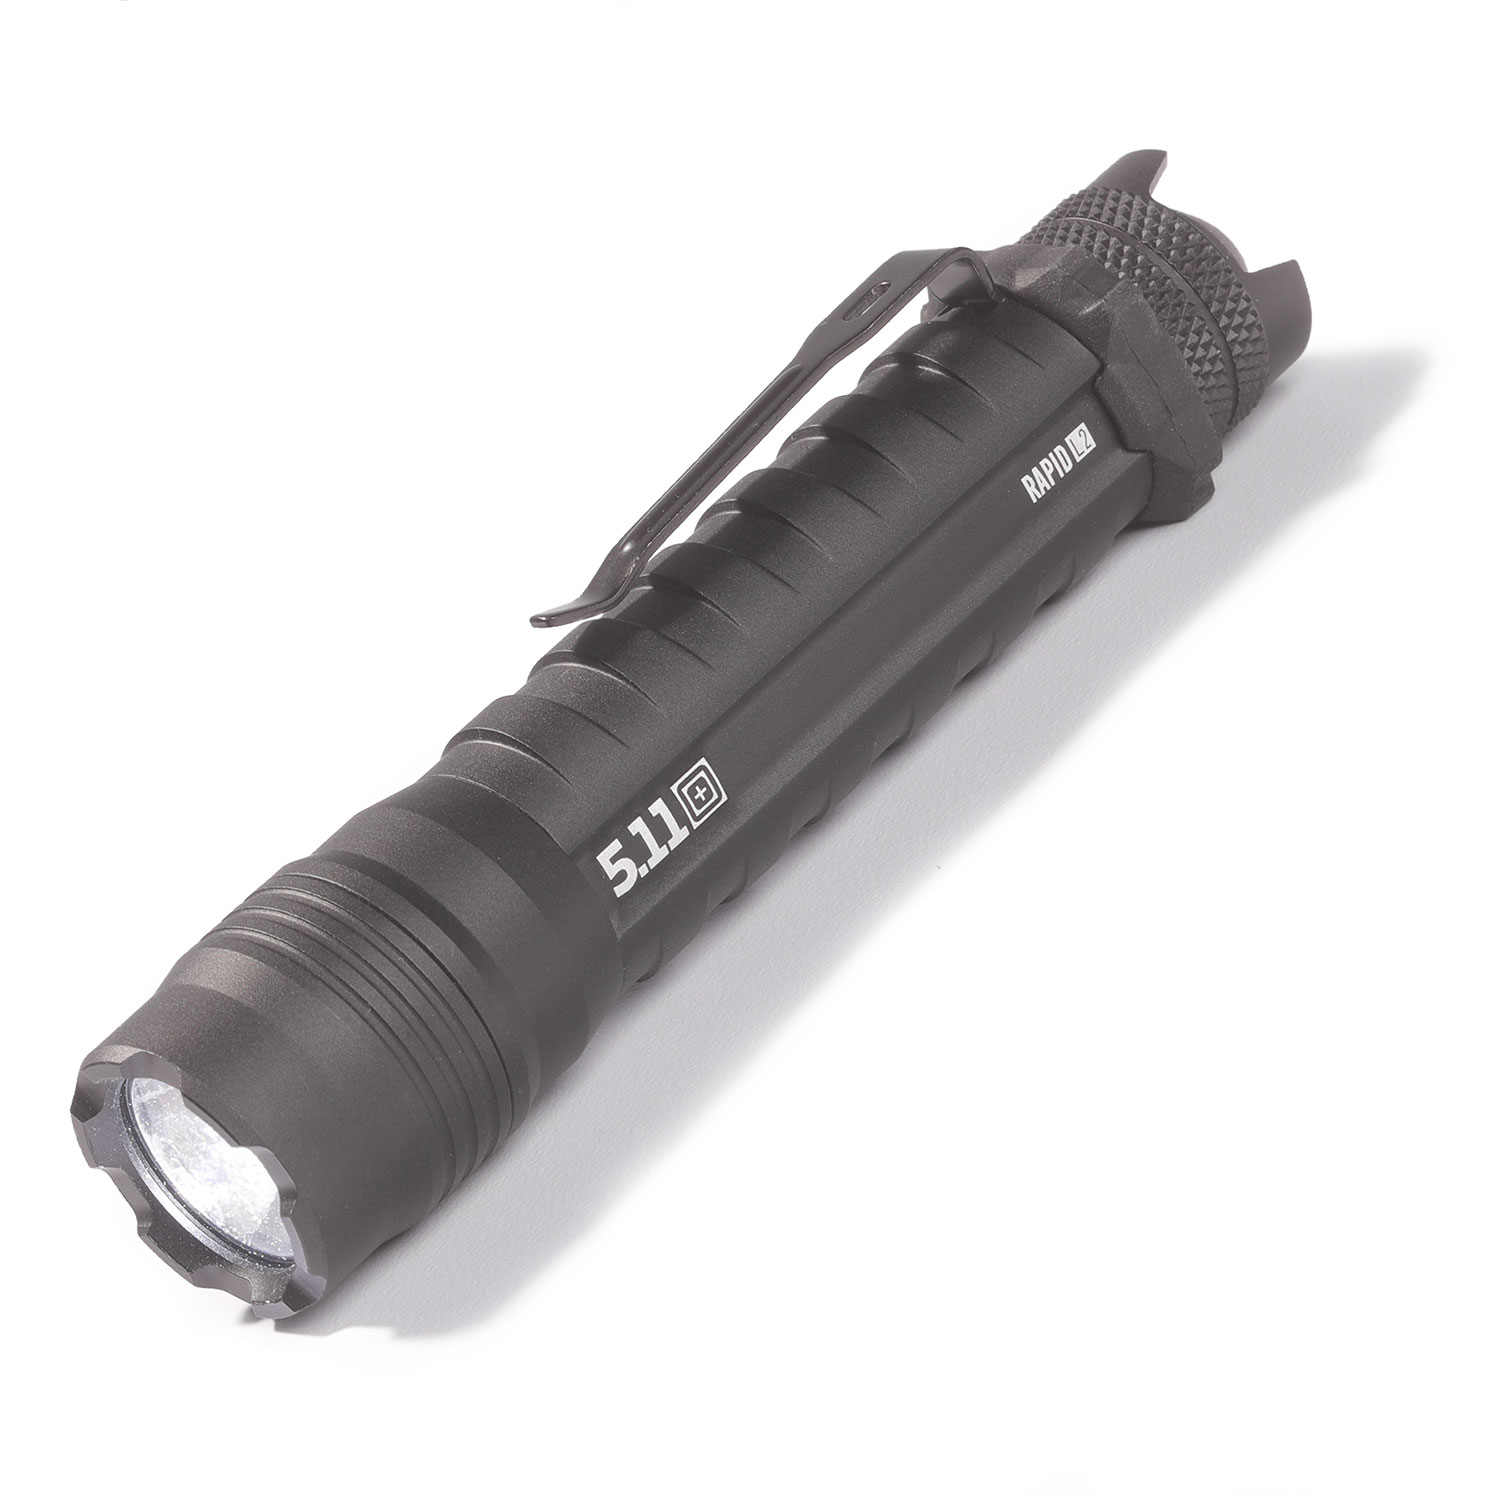 5.11 Tactical Rapid L2 Tactical Flashlight